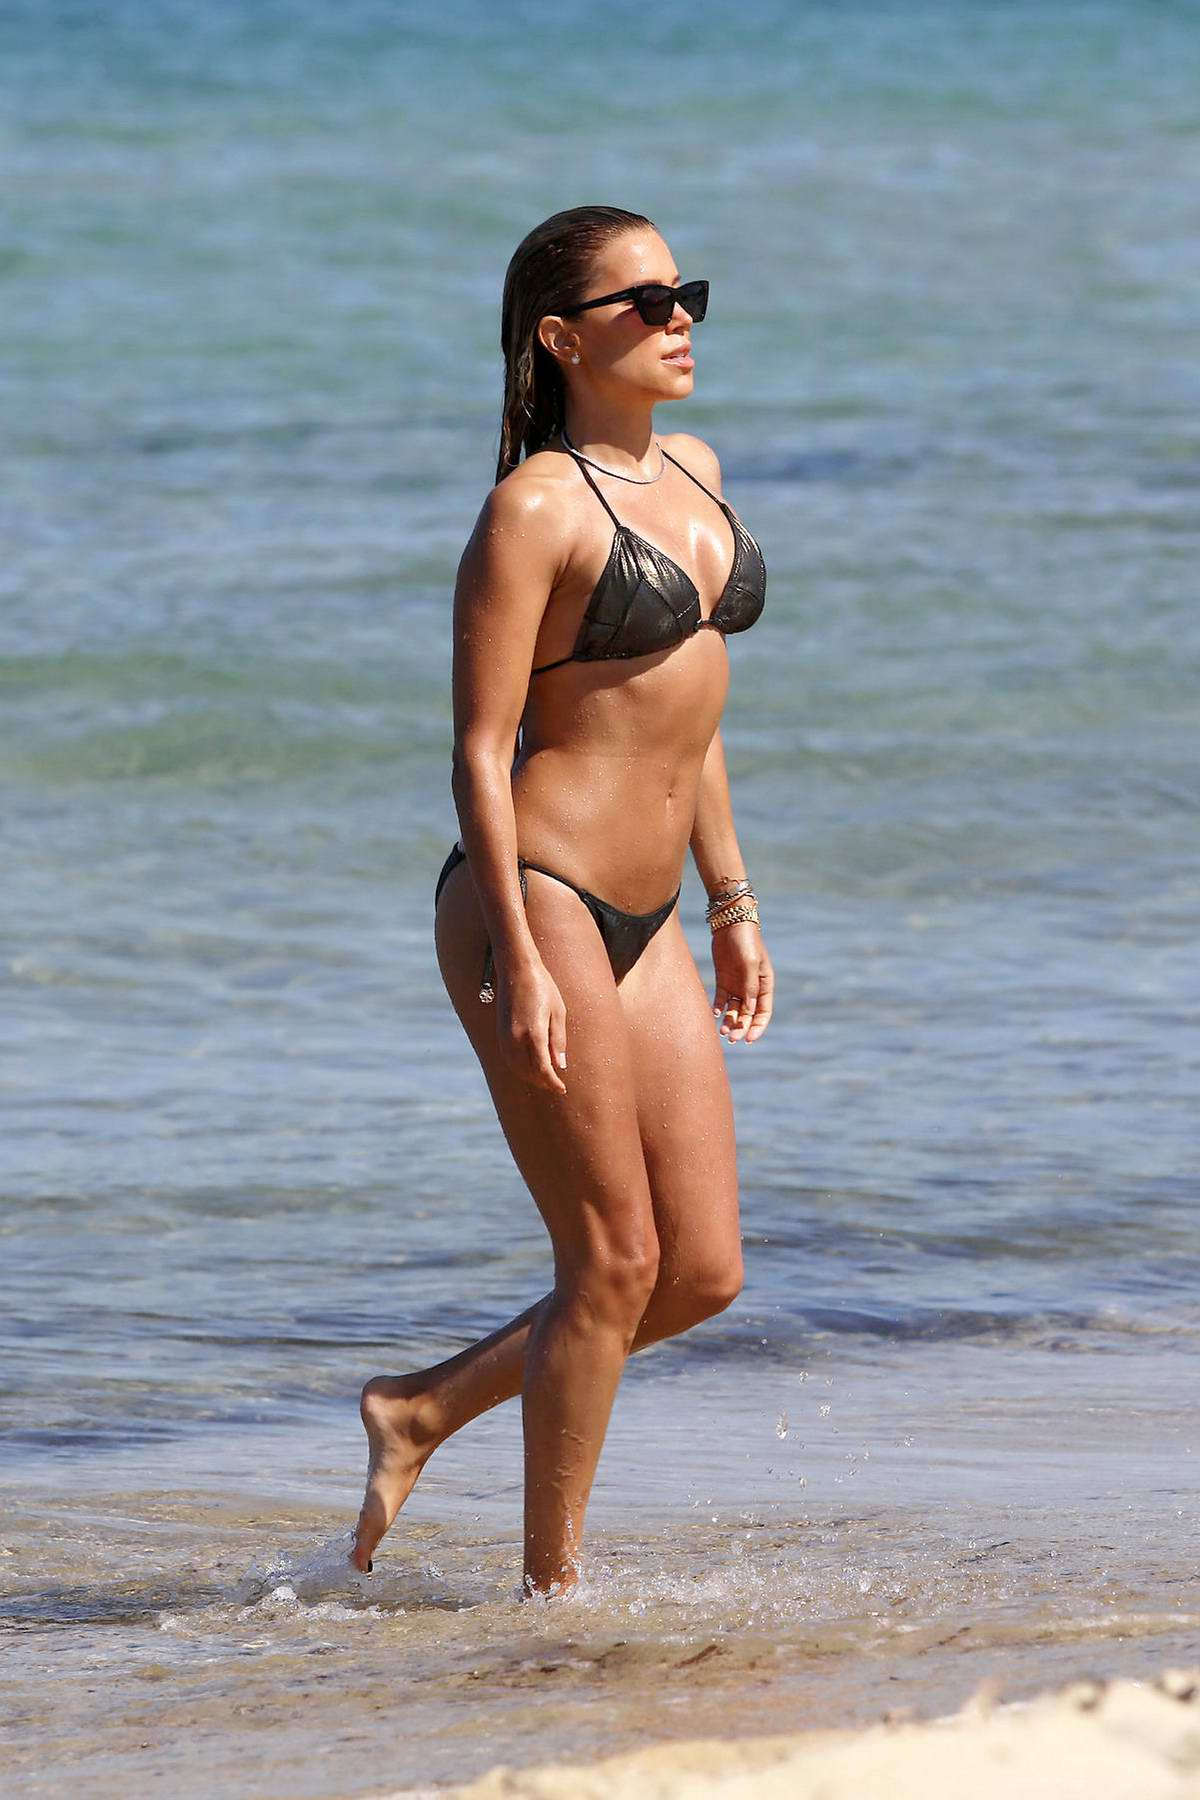 Sylvie Meis shows off her beach body in a bikini as she enjoys a day with Niclas Castello in Saint Tropez, France